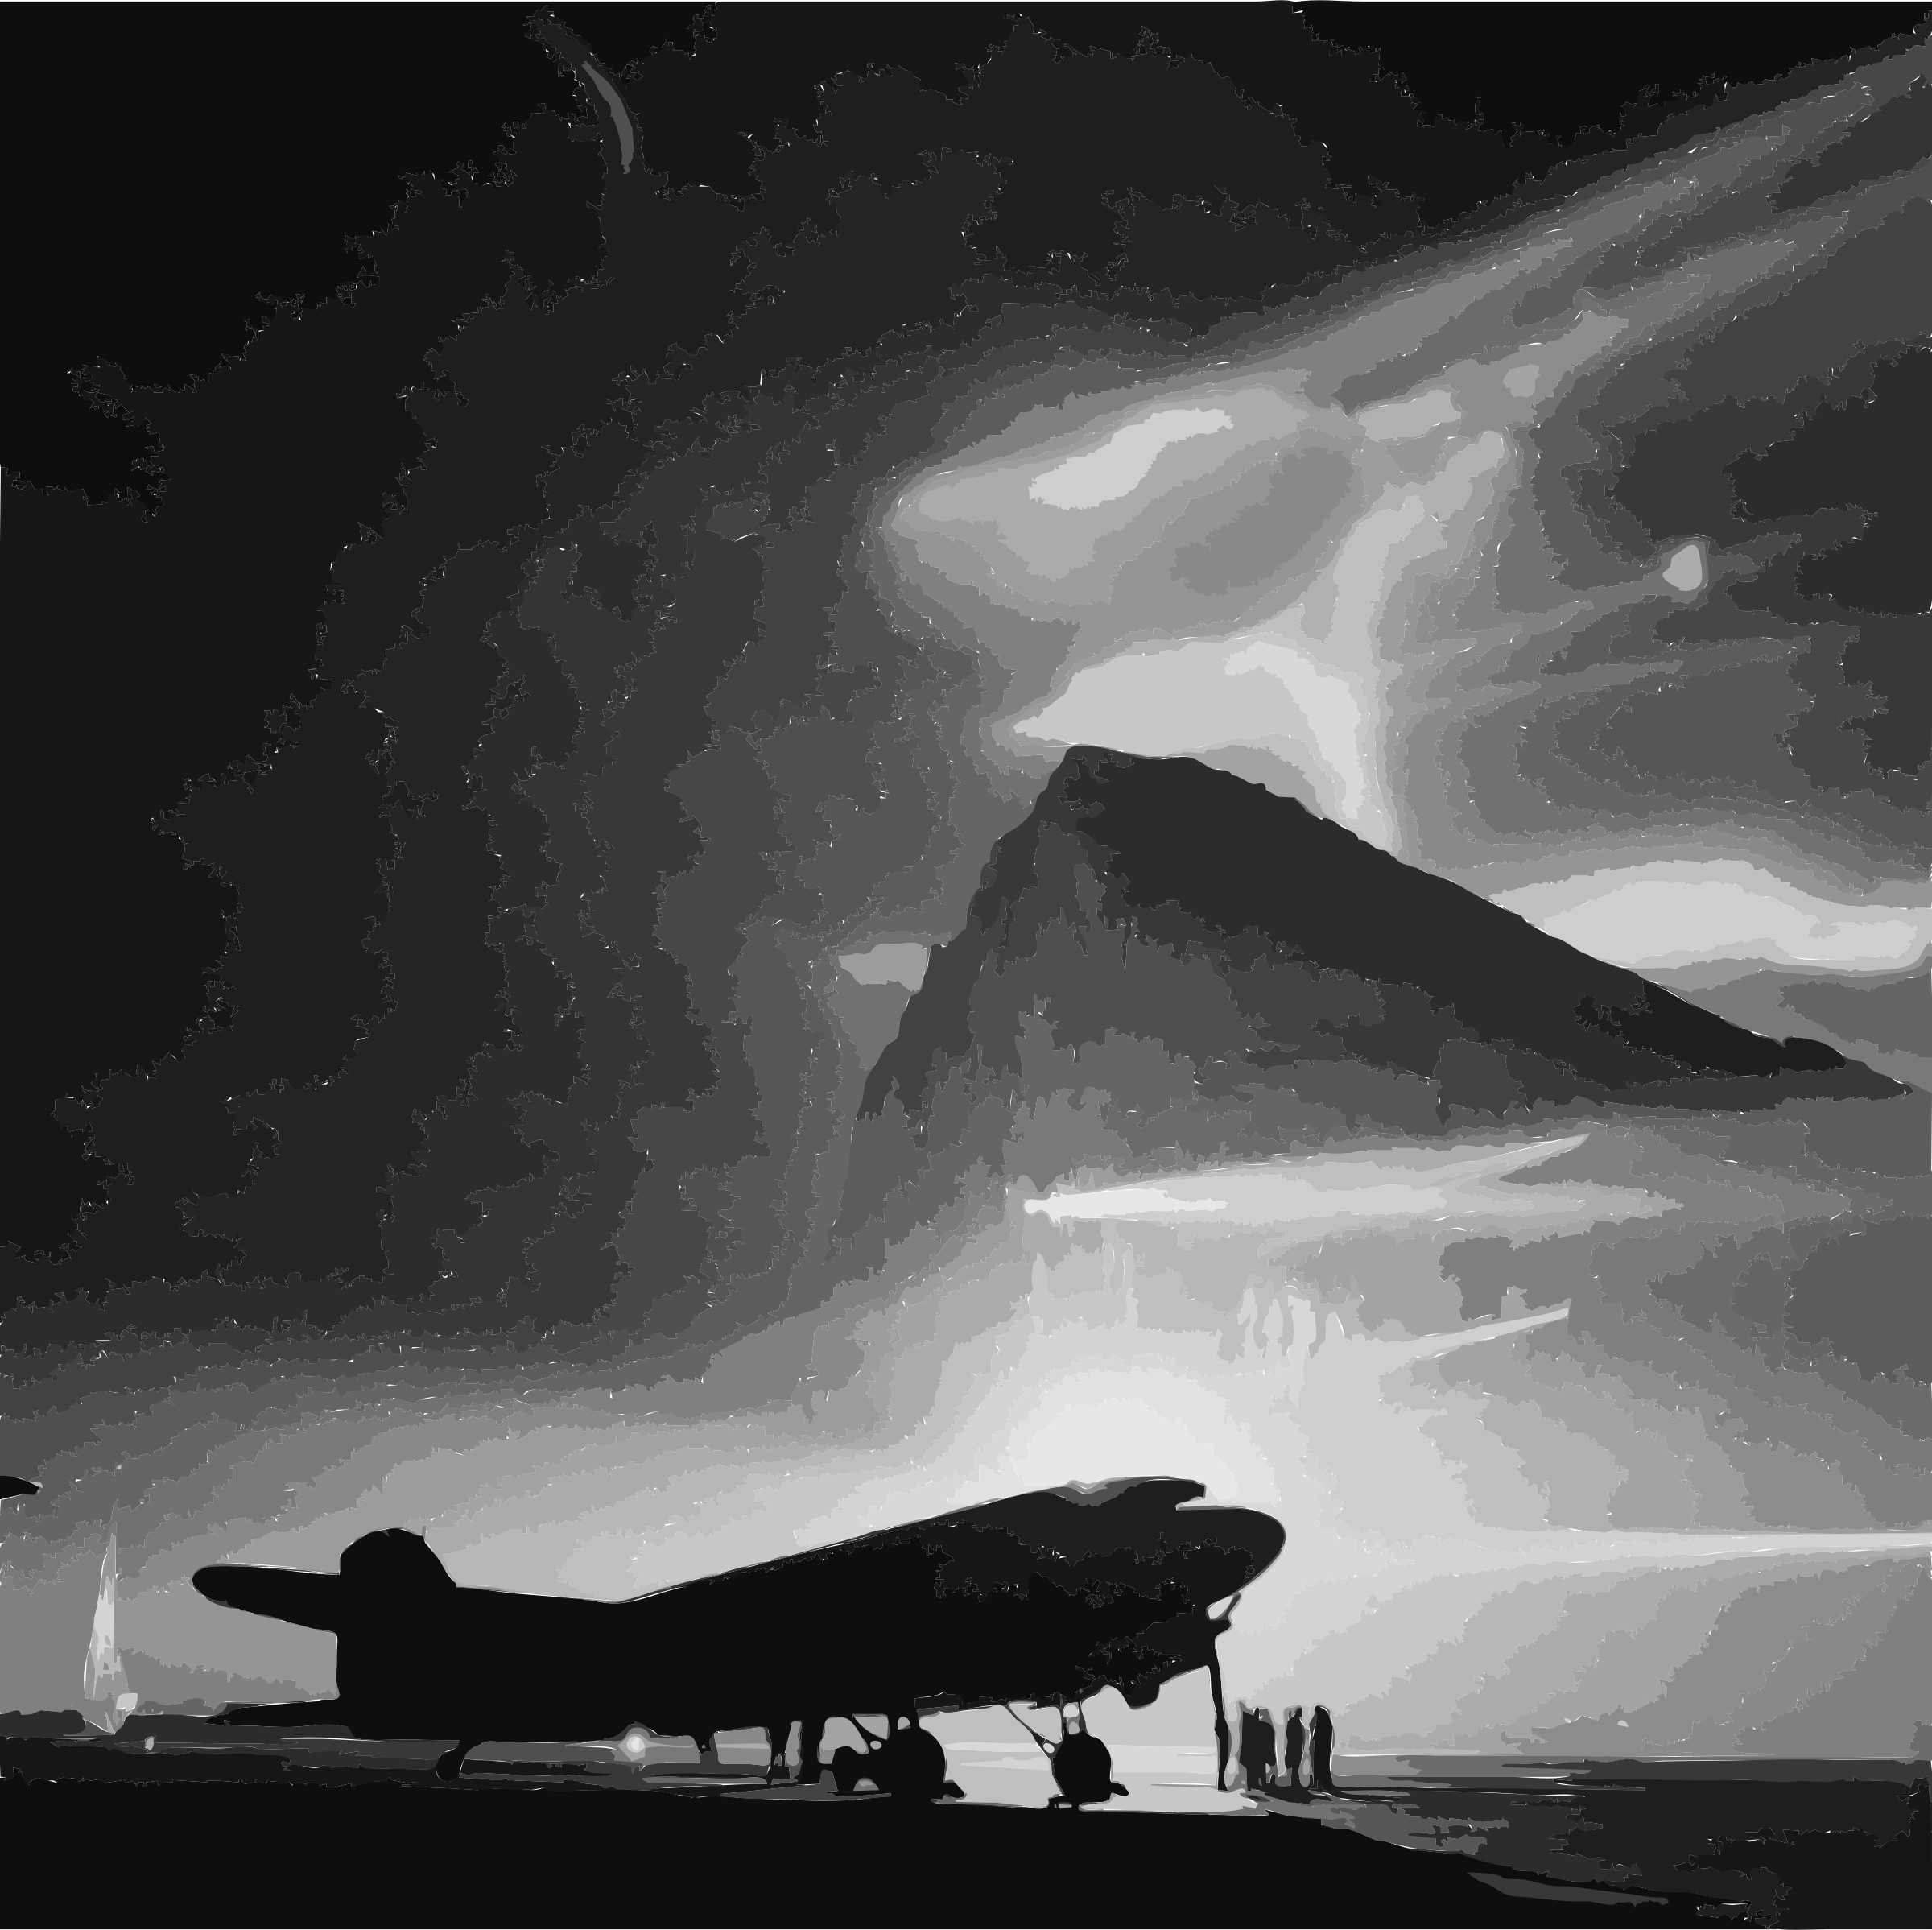 Douglas DC-3 of BOAC at Gibraltar, silhouetted by searchlights on the Rock by 5nbz3a+45jqtl07aorc